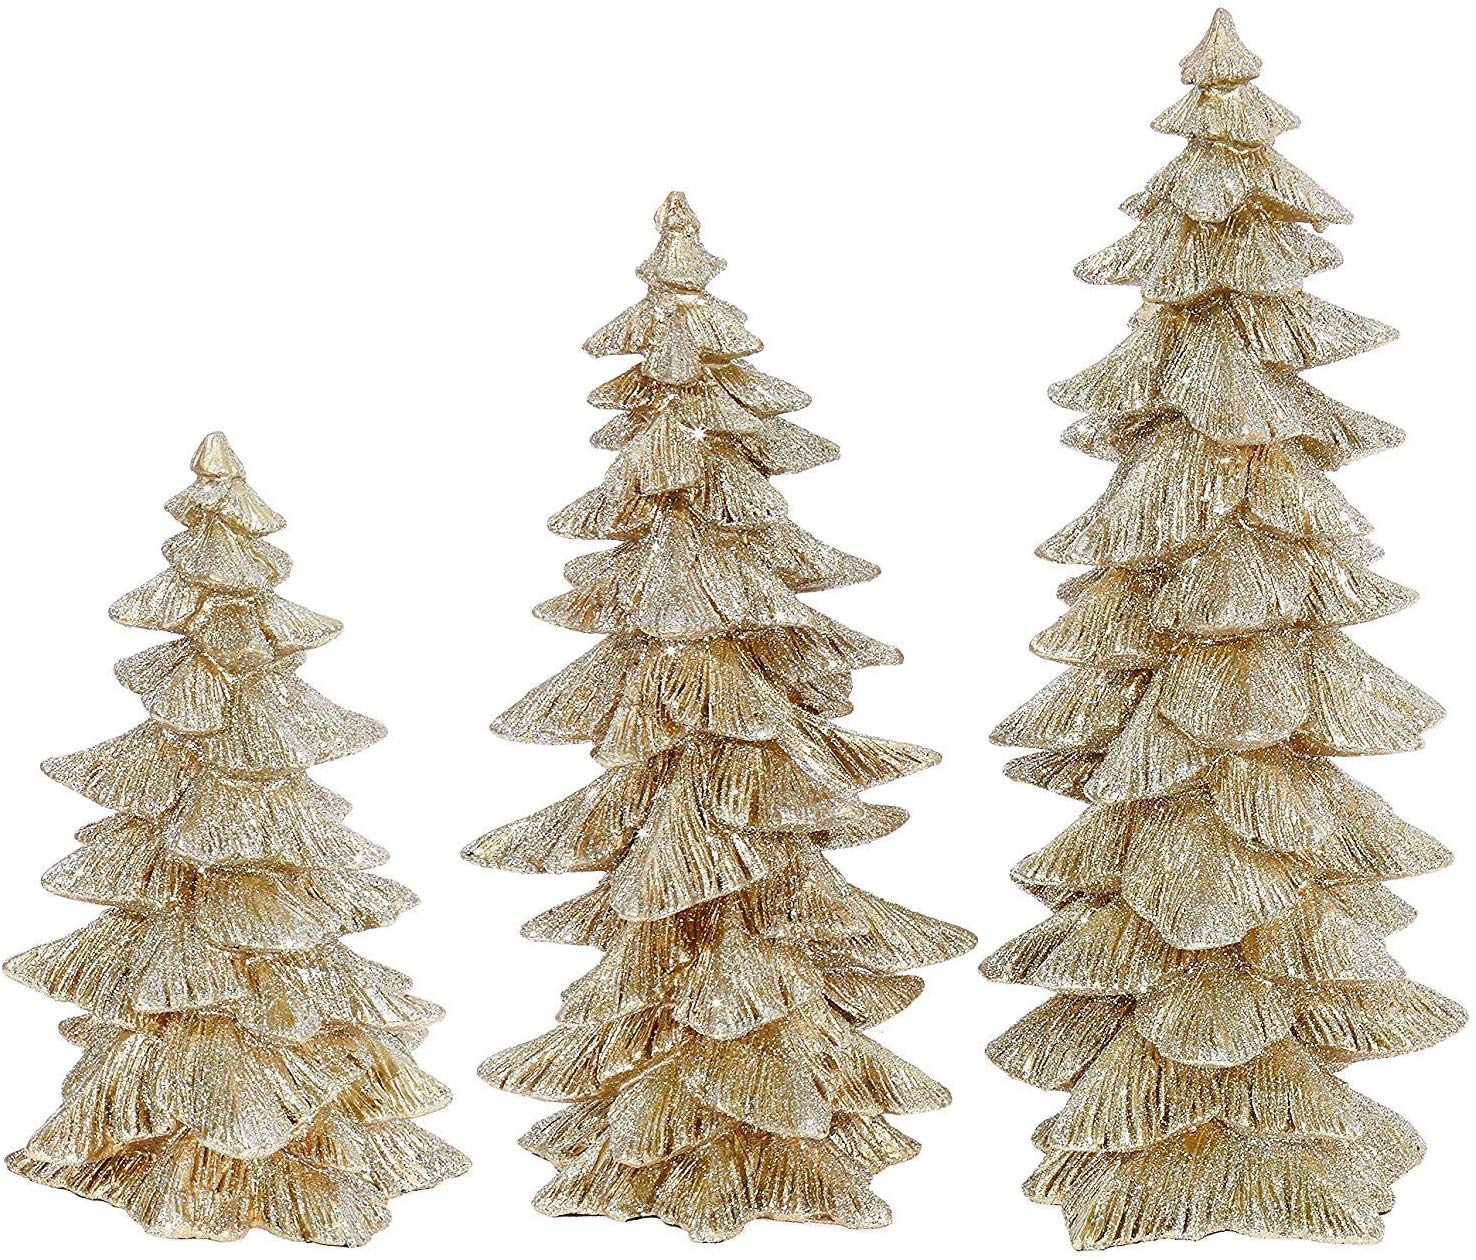 Champagne Gold Glittered Christmas Trees